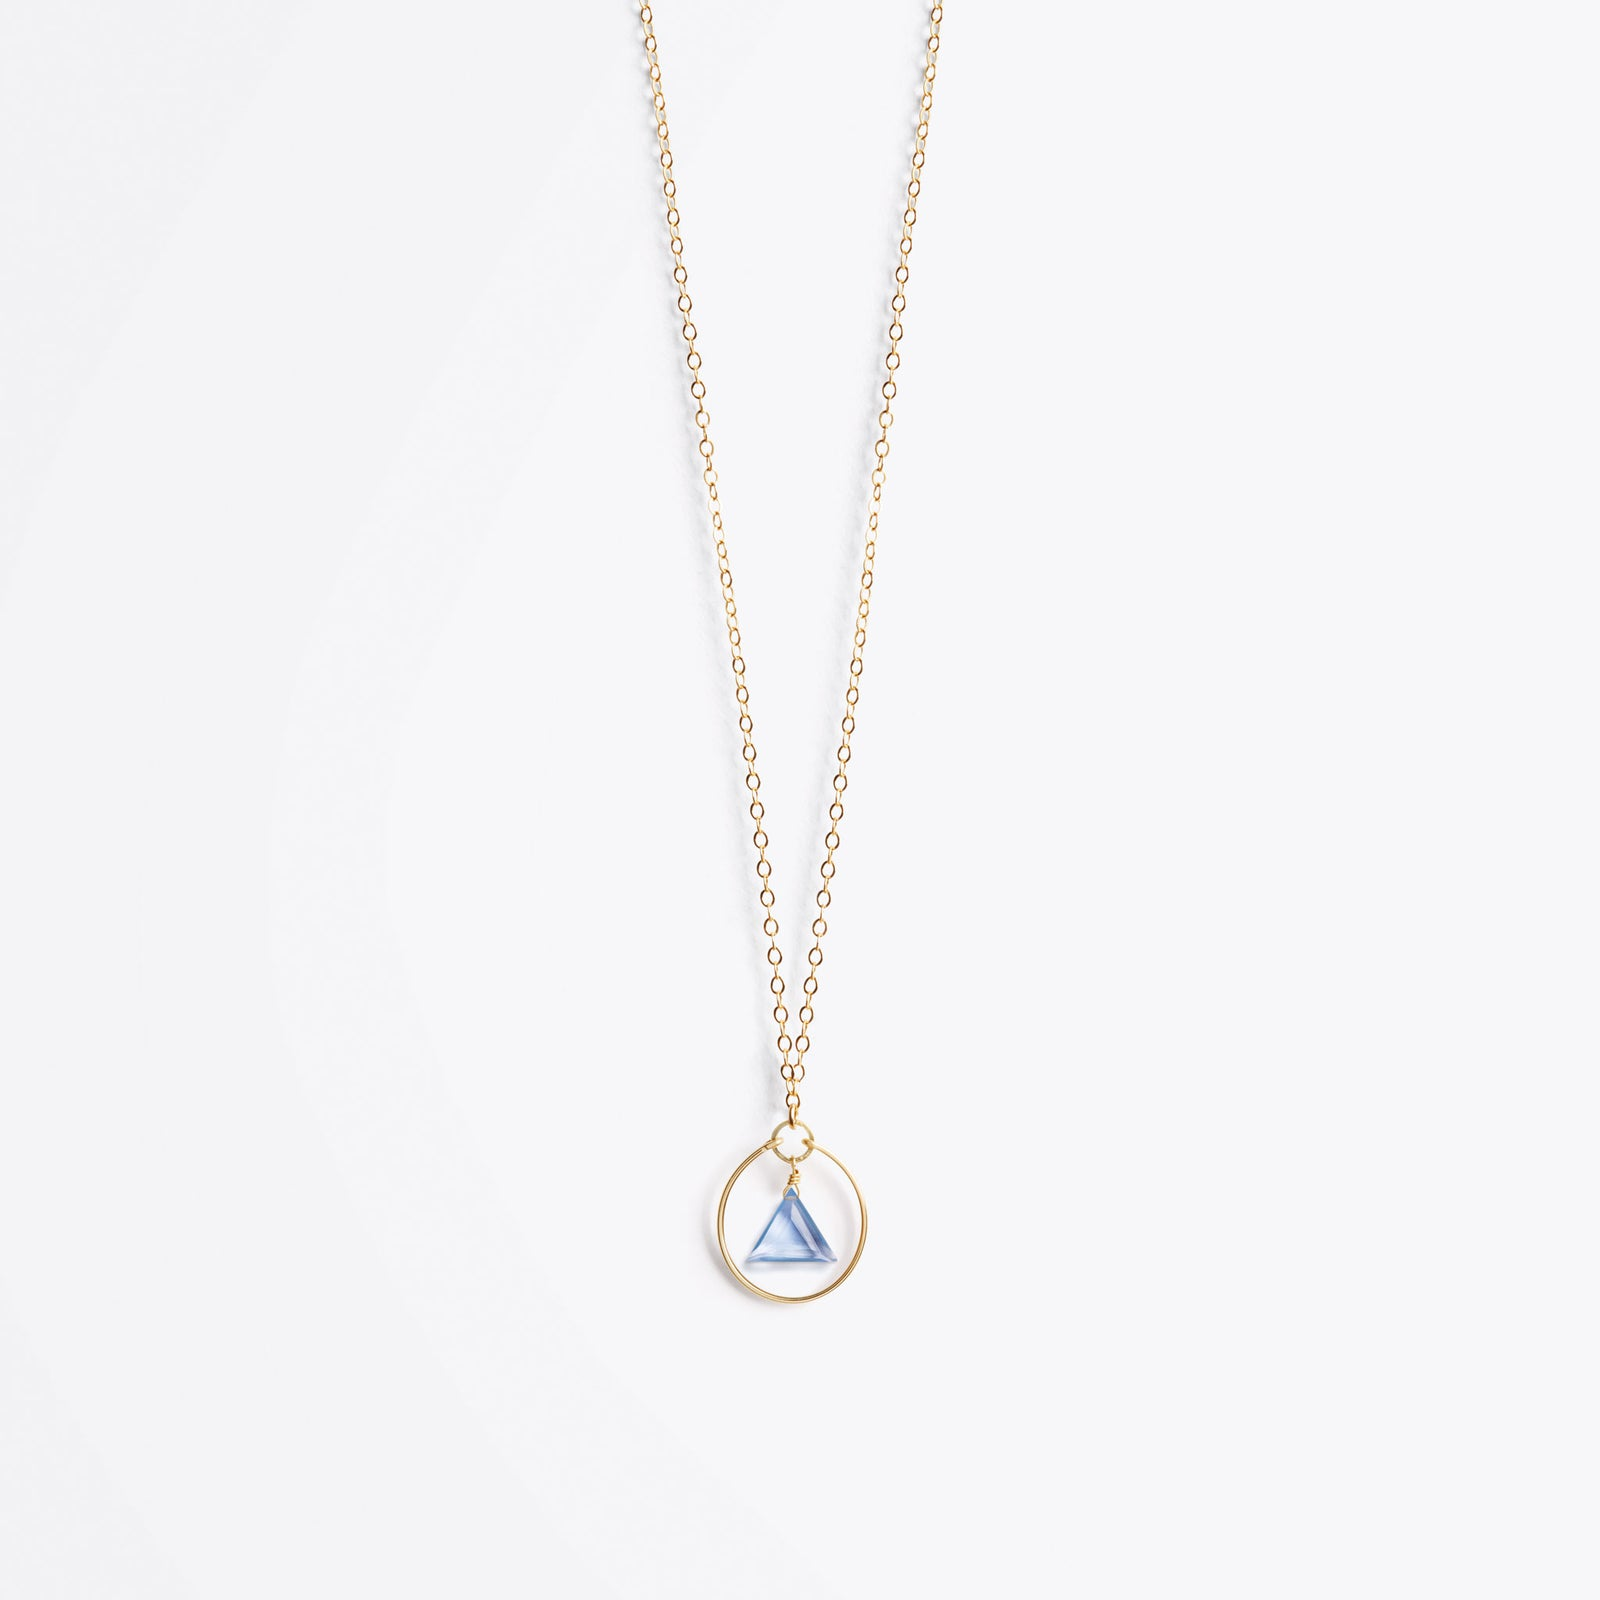 stella prism gold chain necklace | california blue quartz